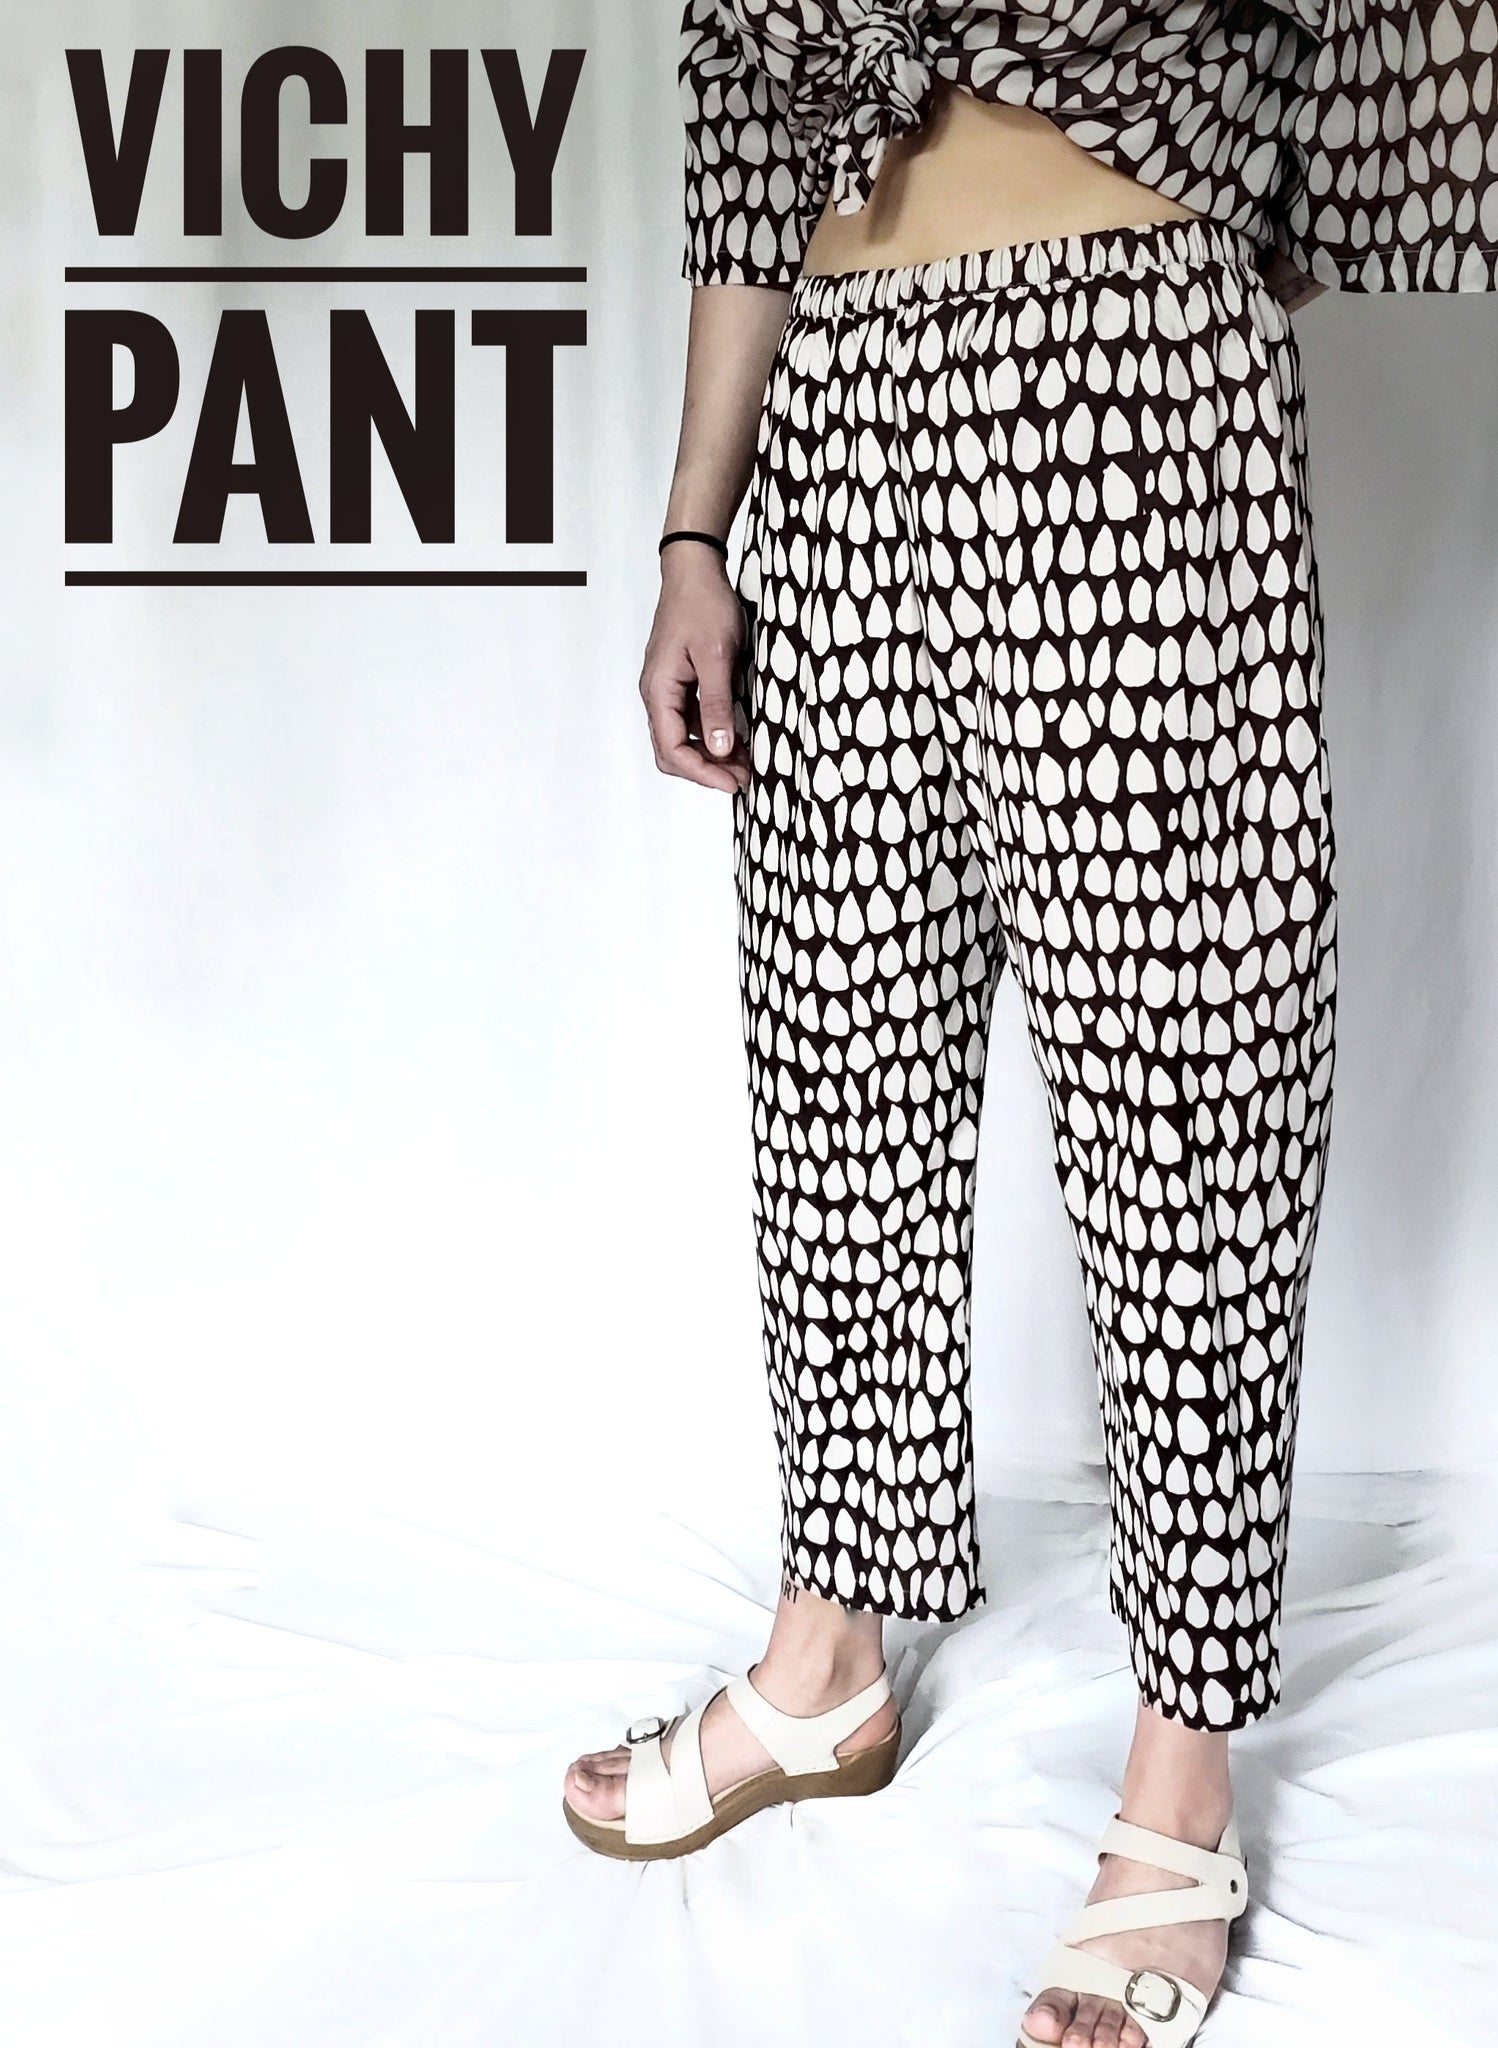 Vichy Pant in Black and White, in Butti print